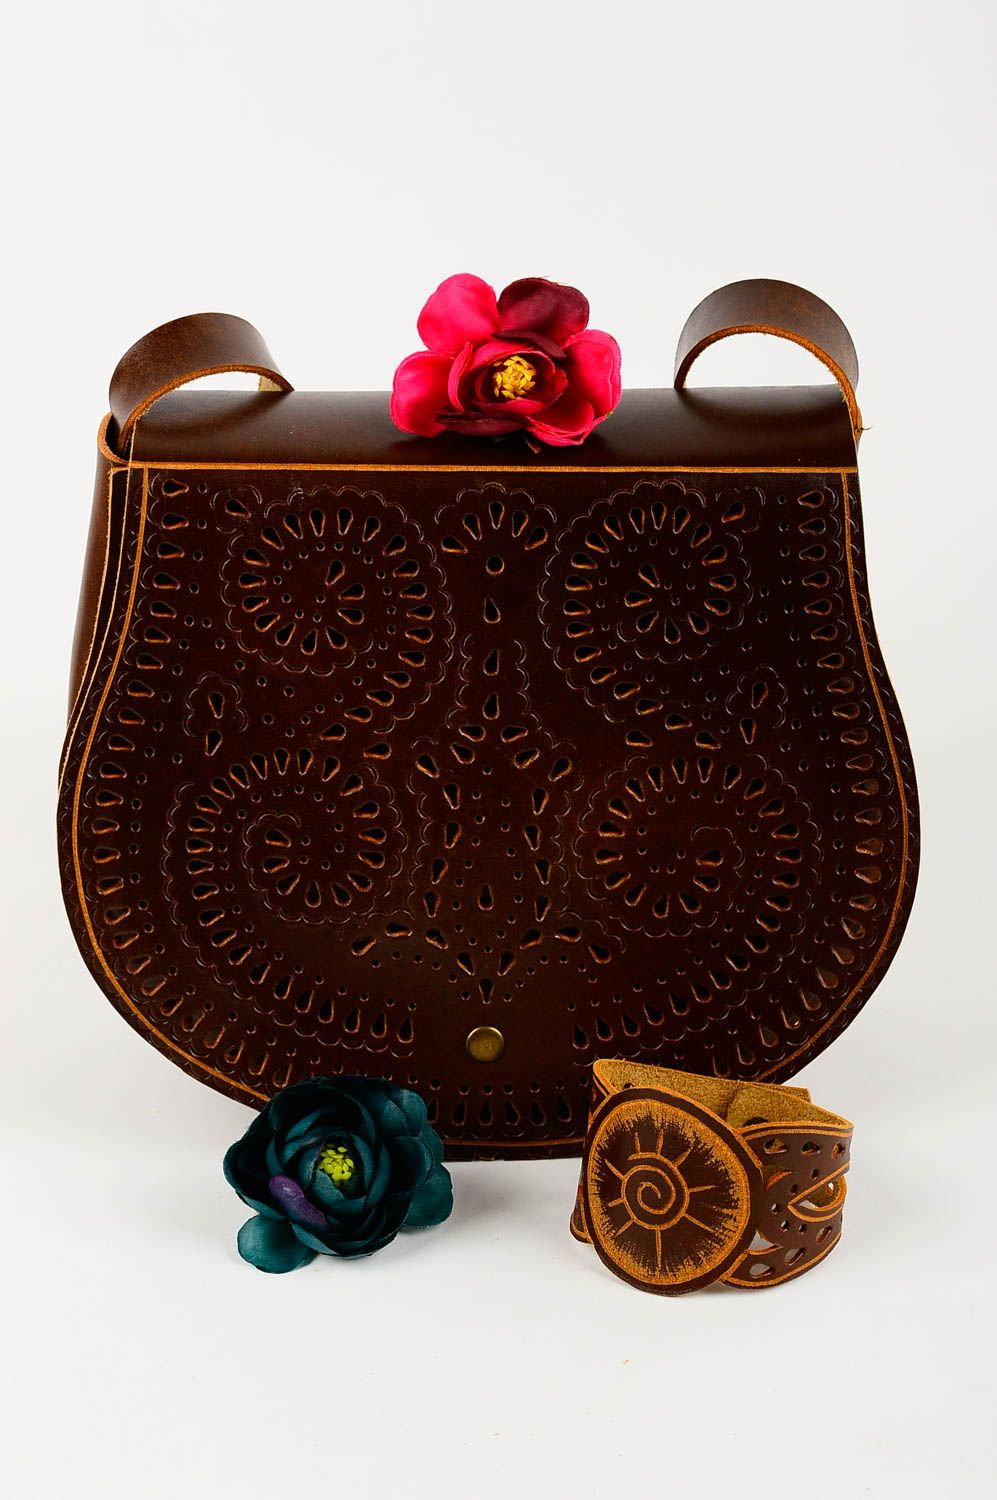 e2d71a5c63f Handmade leather bag leather bag natural leather handbag unusual design bag